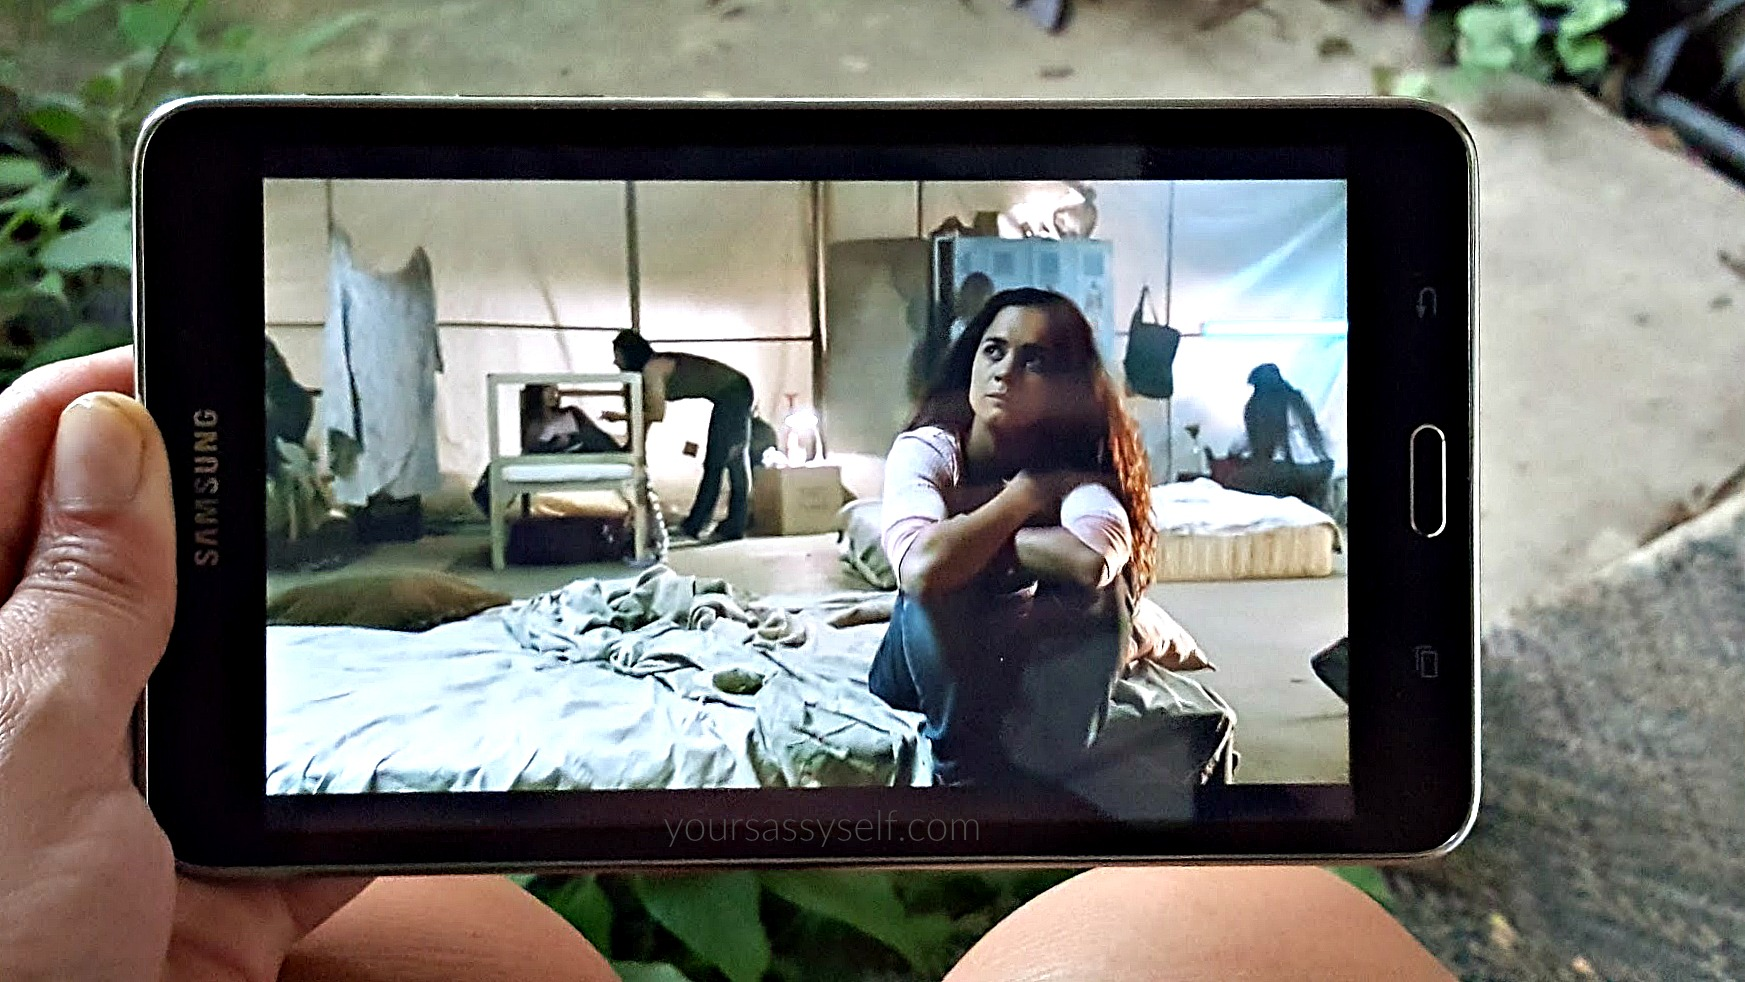 Watching Queen of the South on Tablet - yoursassyself.com